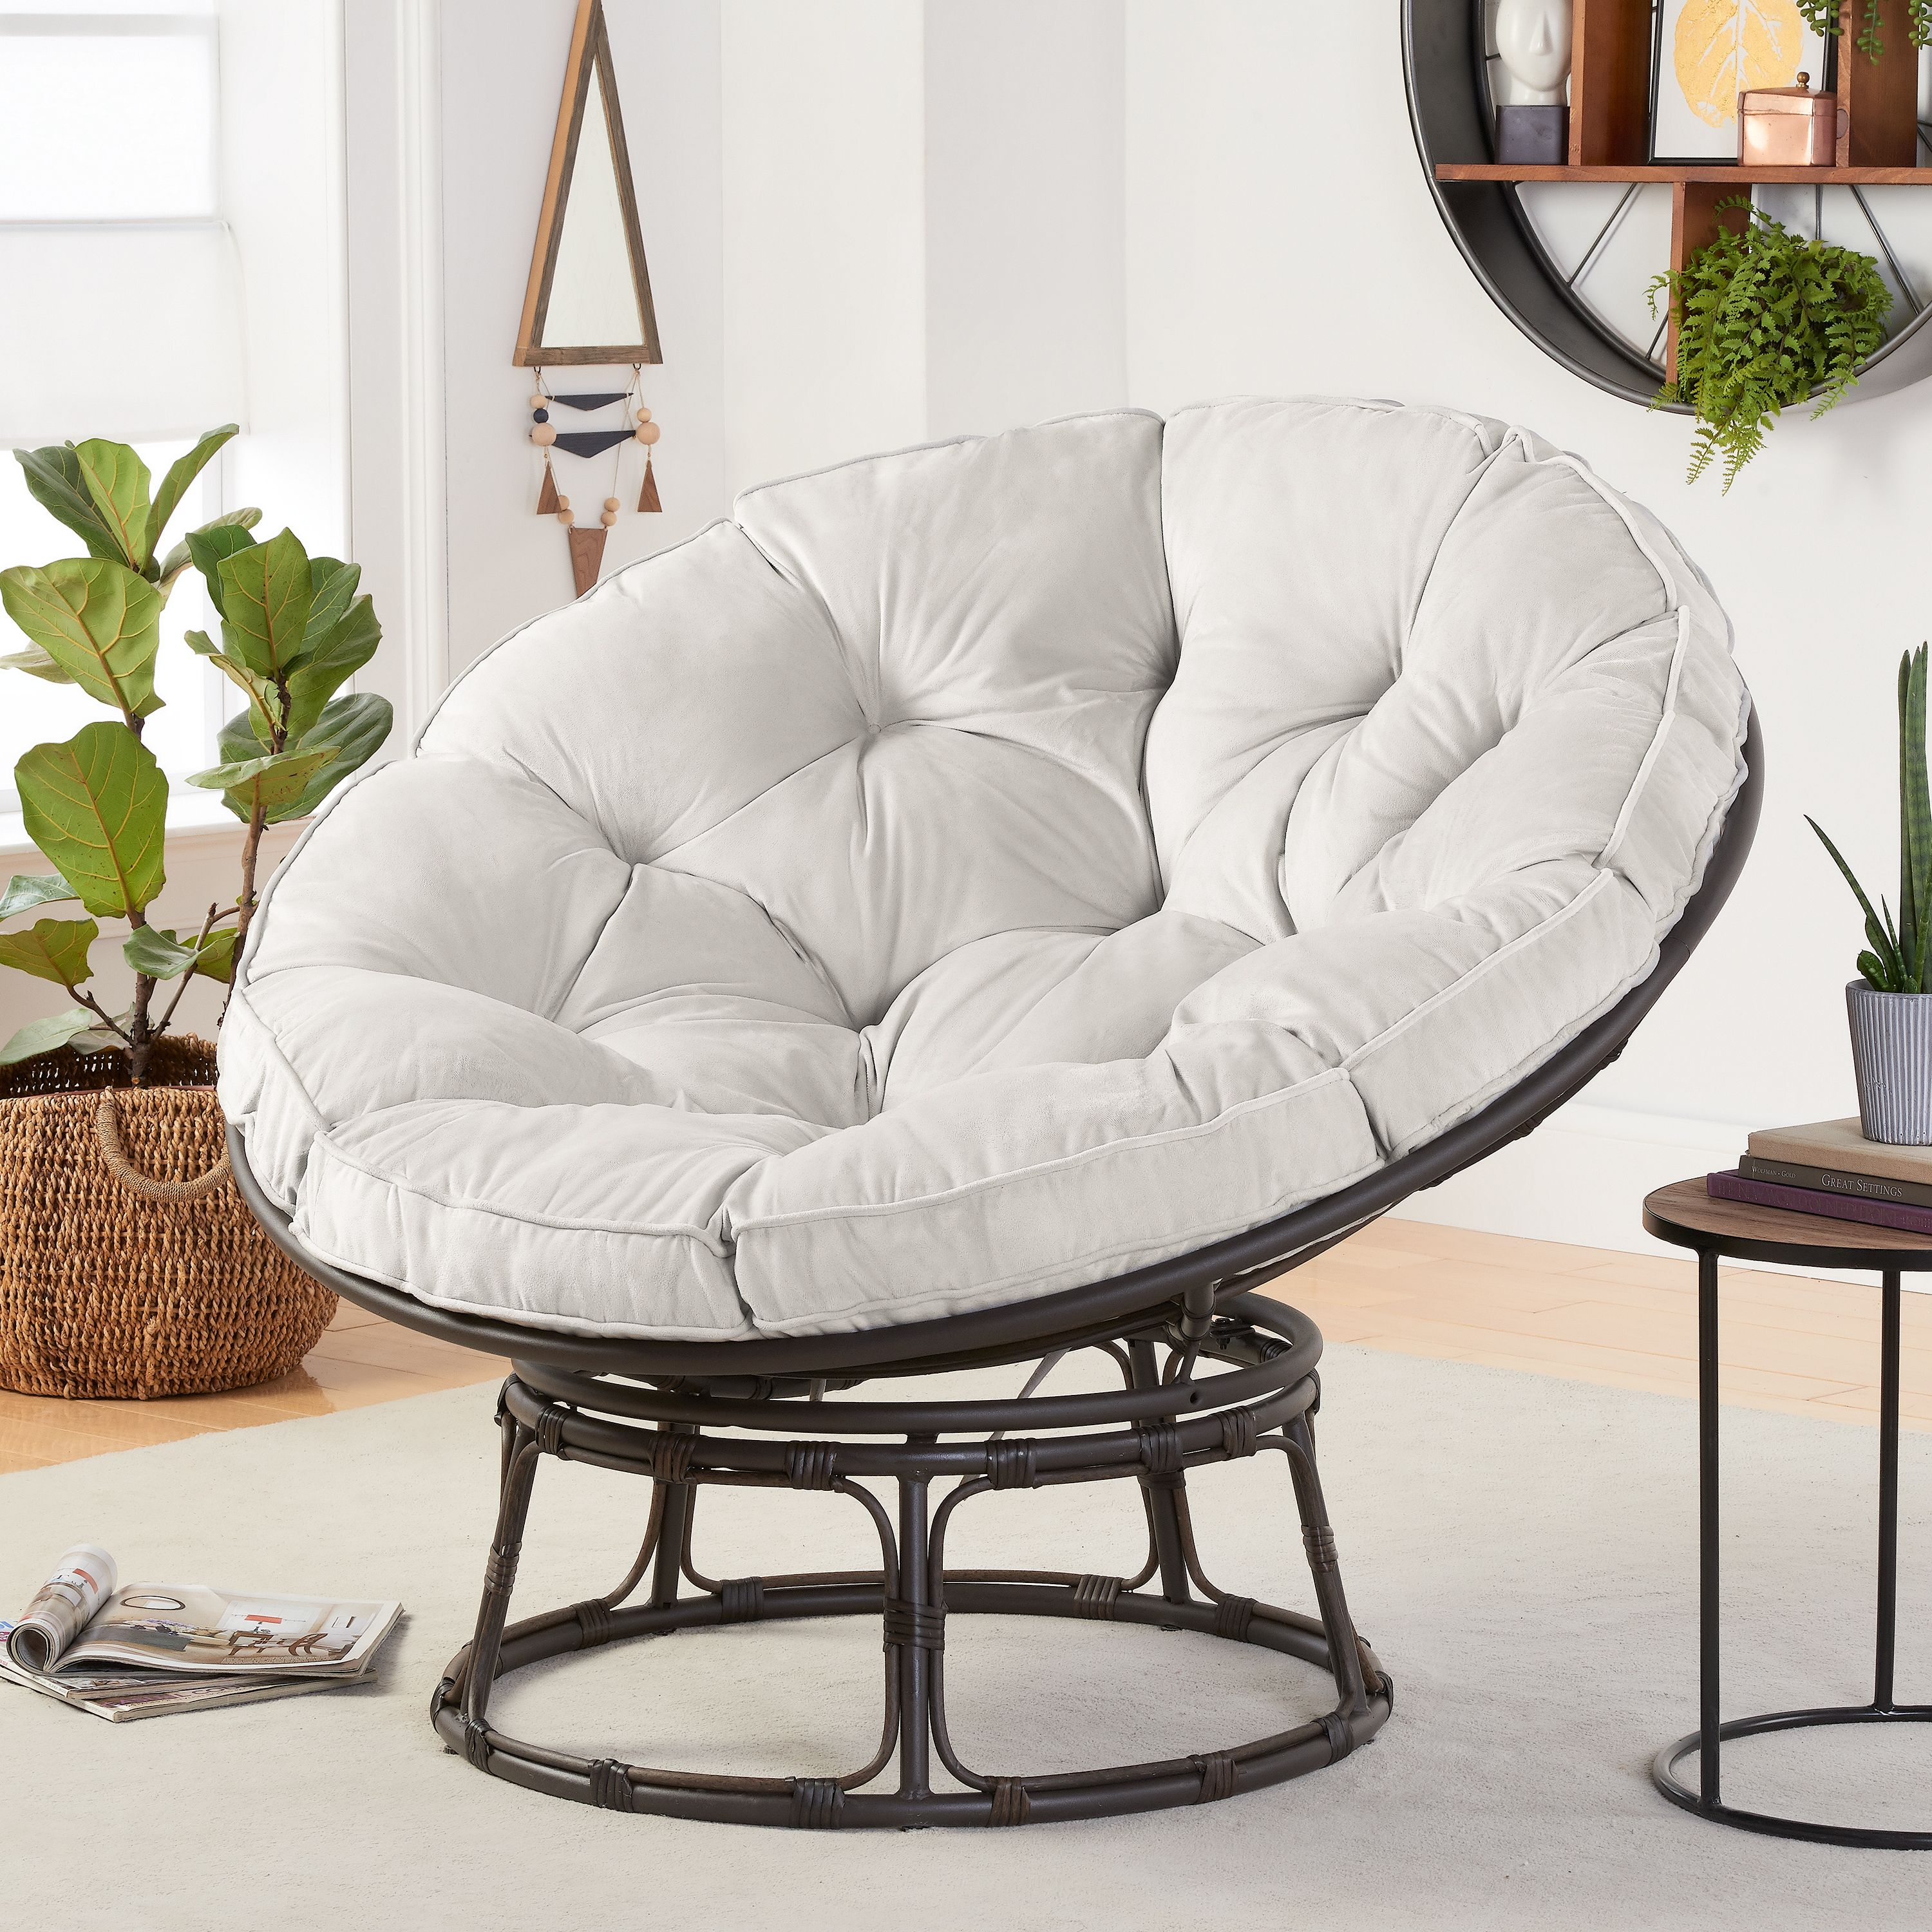 Home In 2020 With Images Papasan Chair Papasan Chair Living